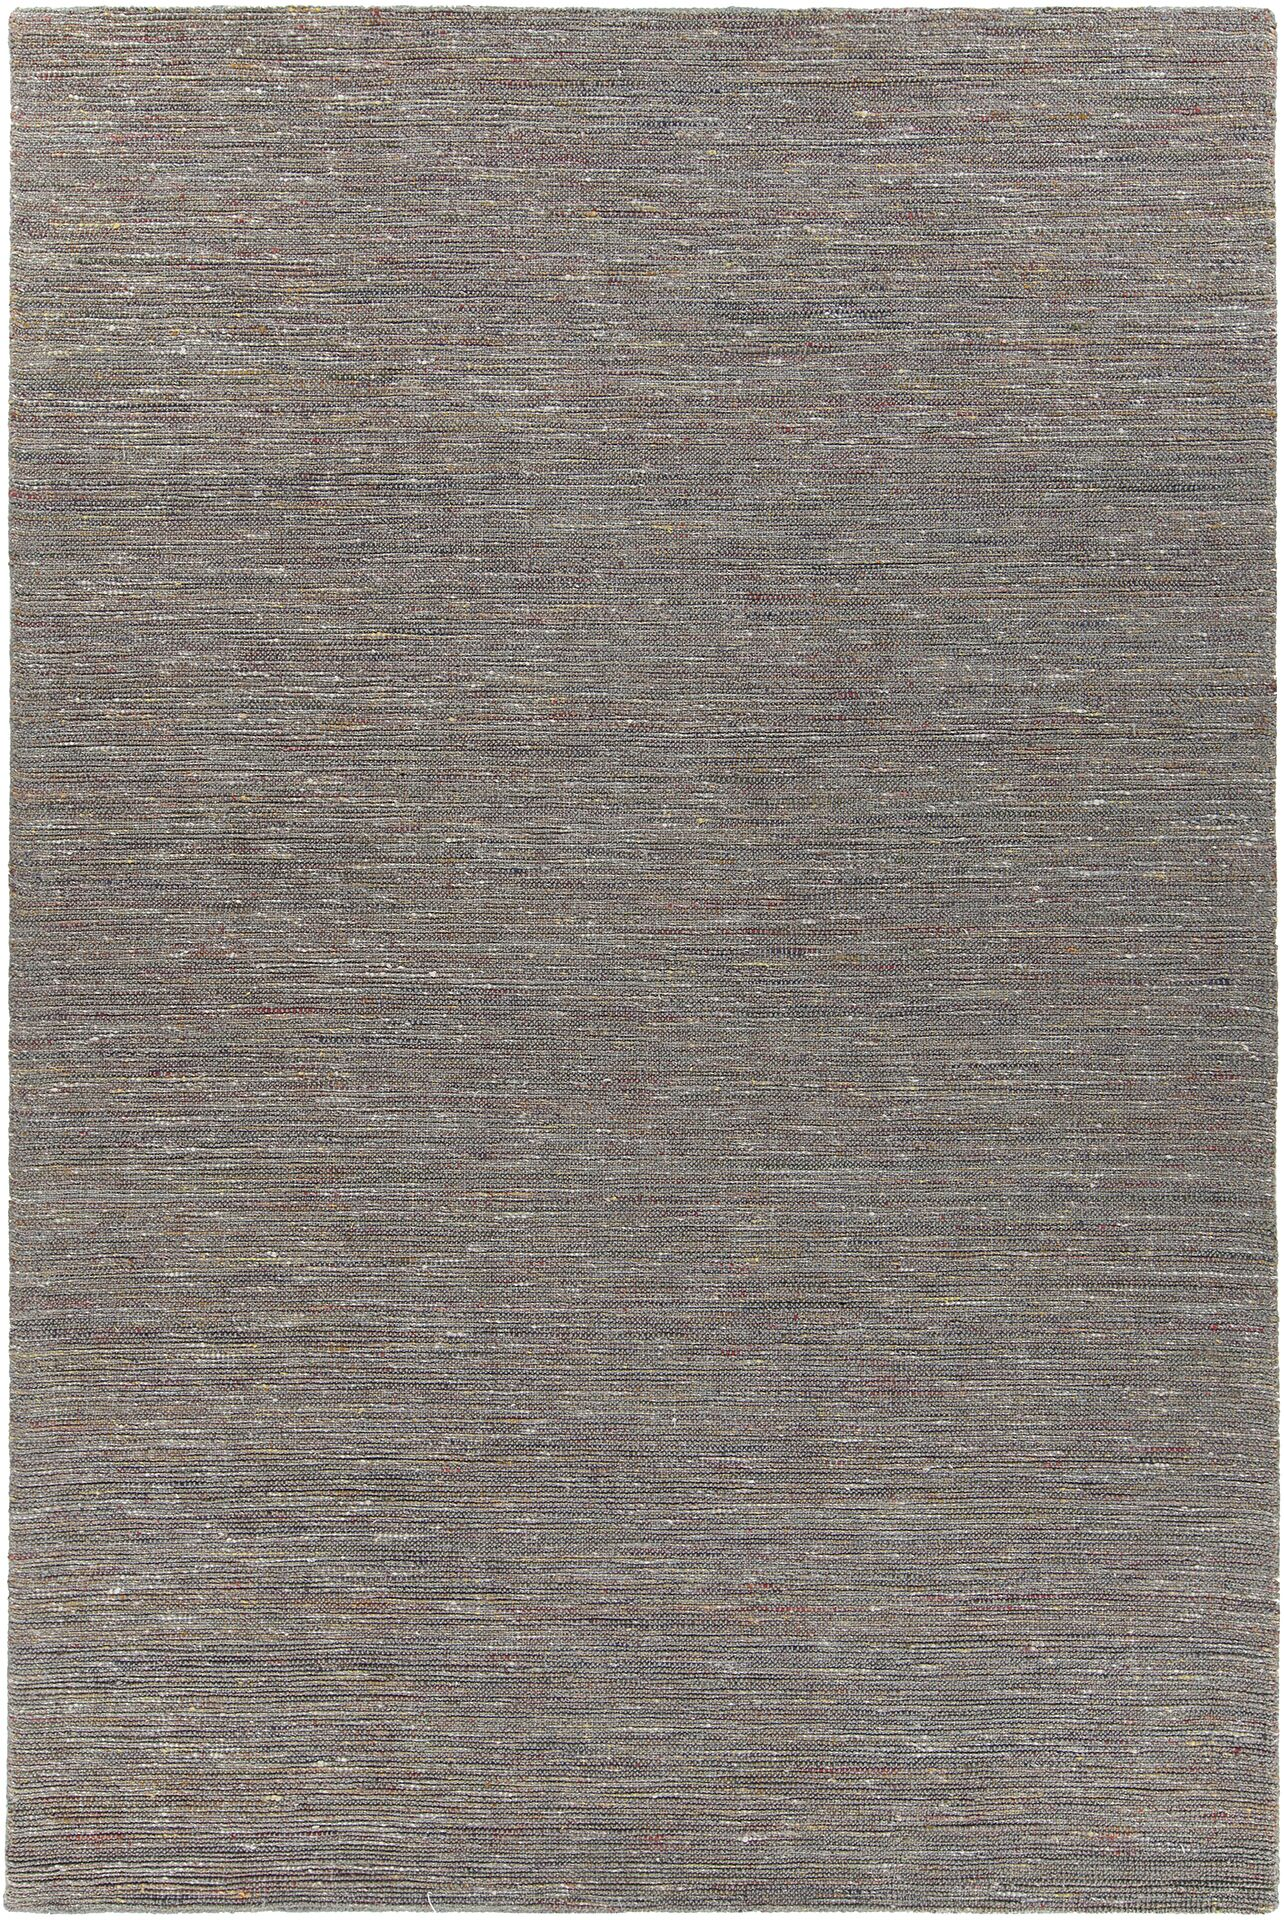 Laxford Hand-Woven Gray Area Rug Rug Size: 7'9